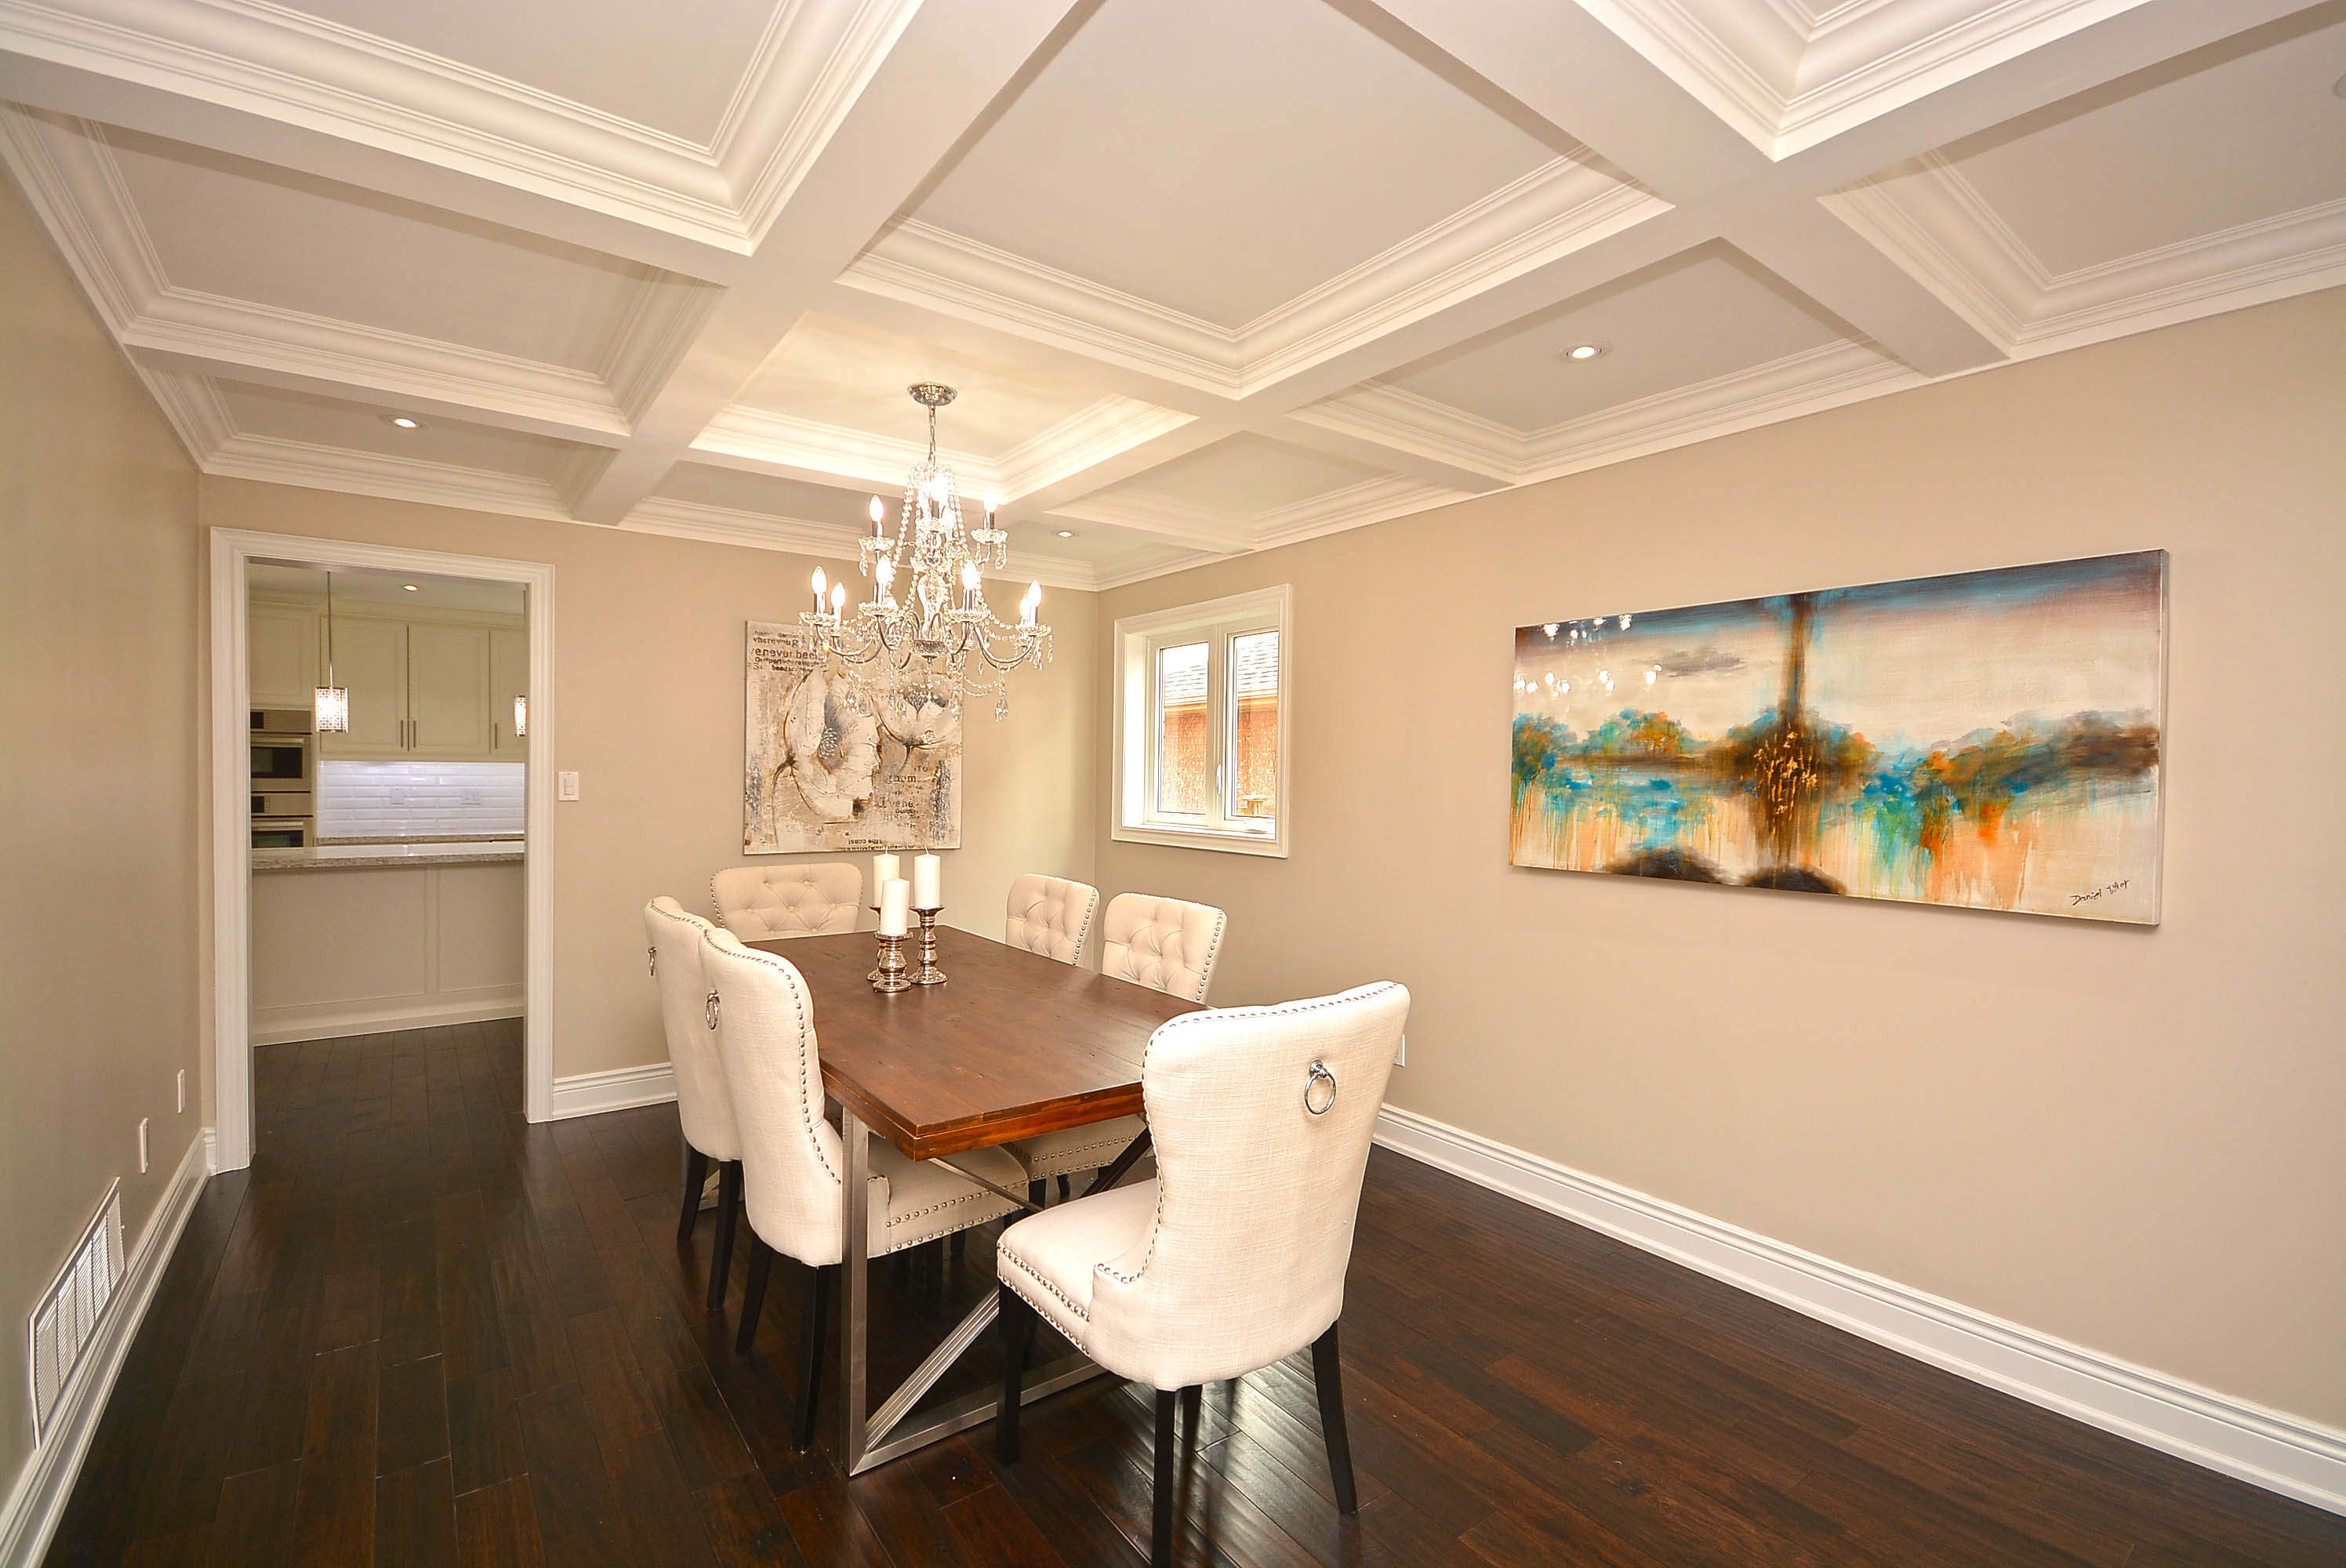 virtual-tour-233002-25   Jms Home Staging & Design - (STAGEJMS ...